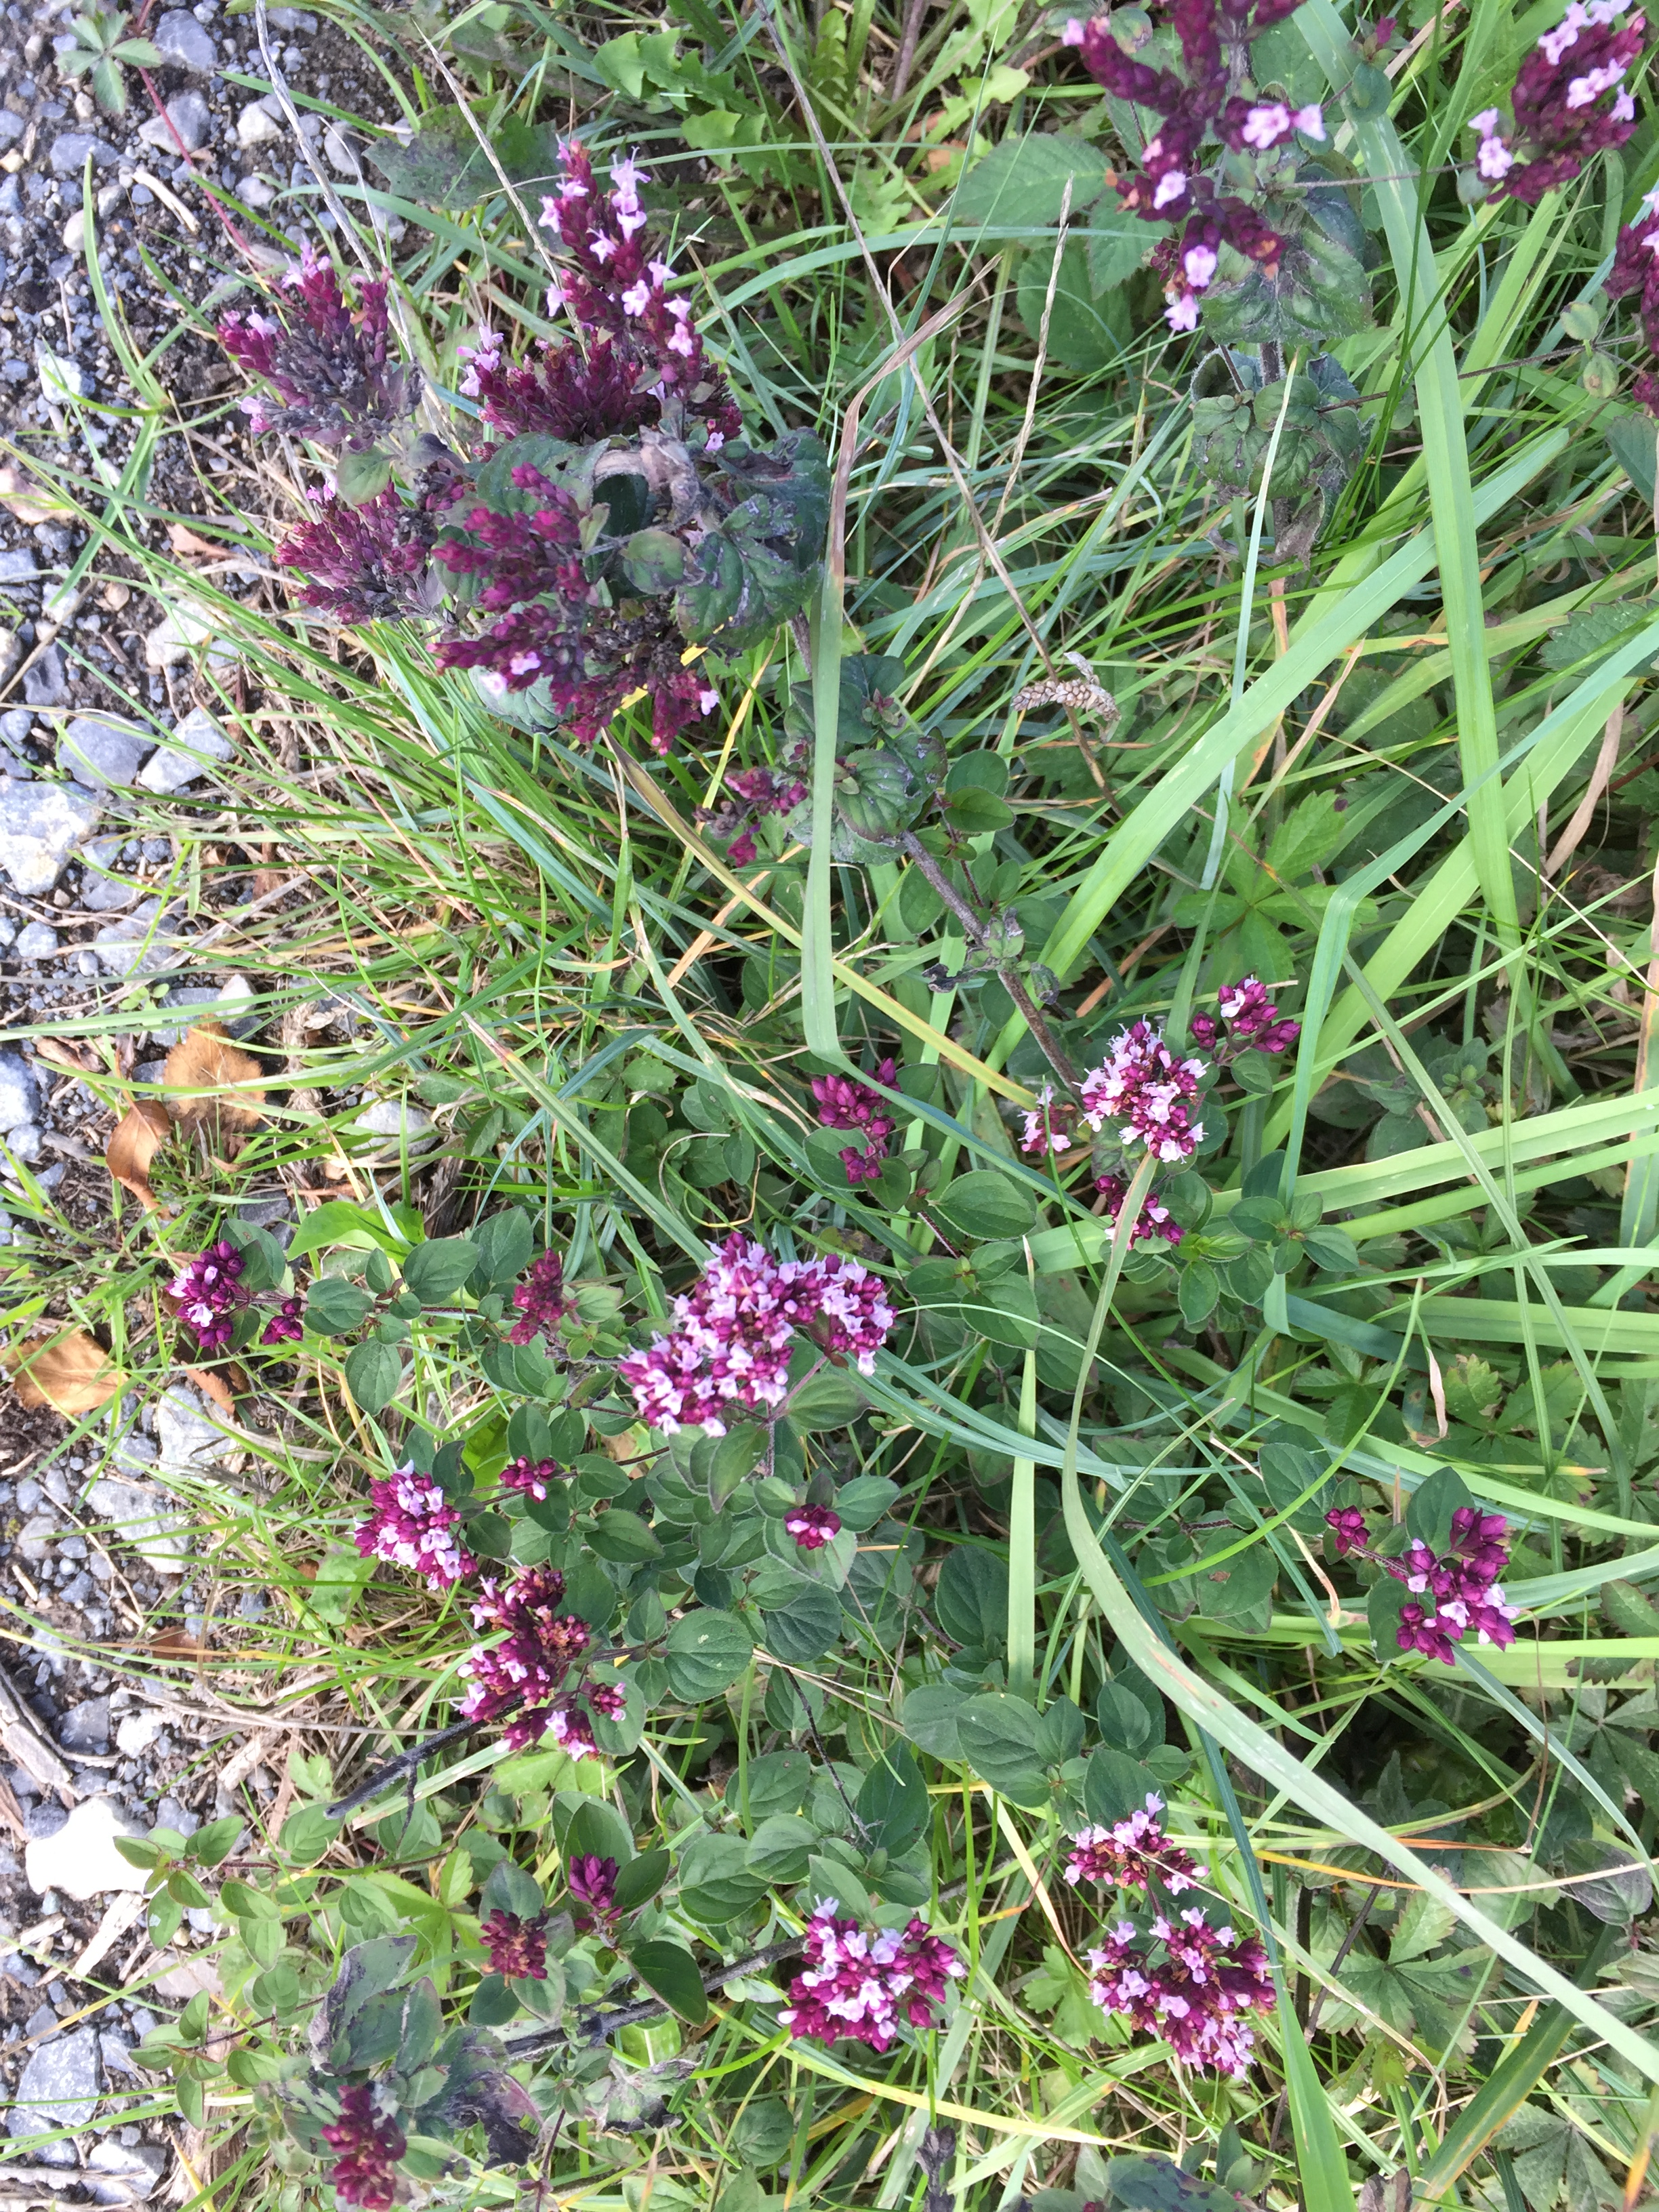 Wild thyme ( Thymus polytrichus ) growing along the lane across the bog. William Shakespeare wrote in 'A Midsummer Night's Dream':  ' I know a bank whereon the wild thyme blows, Where oxlips and the nodding violet grows.'